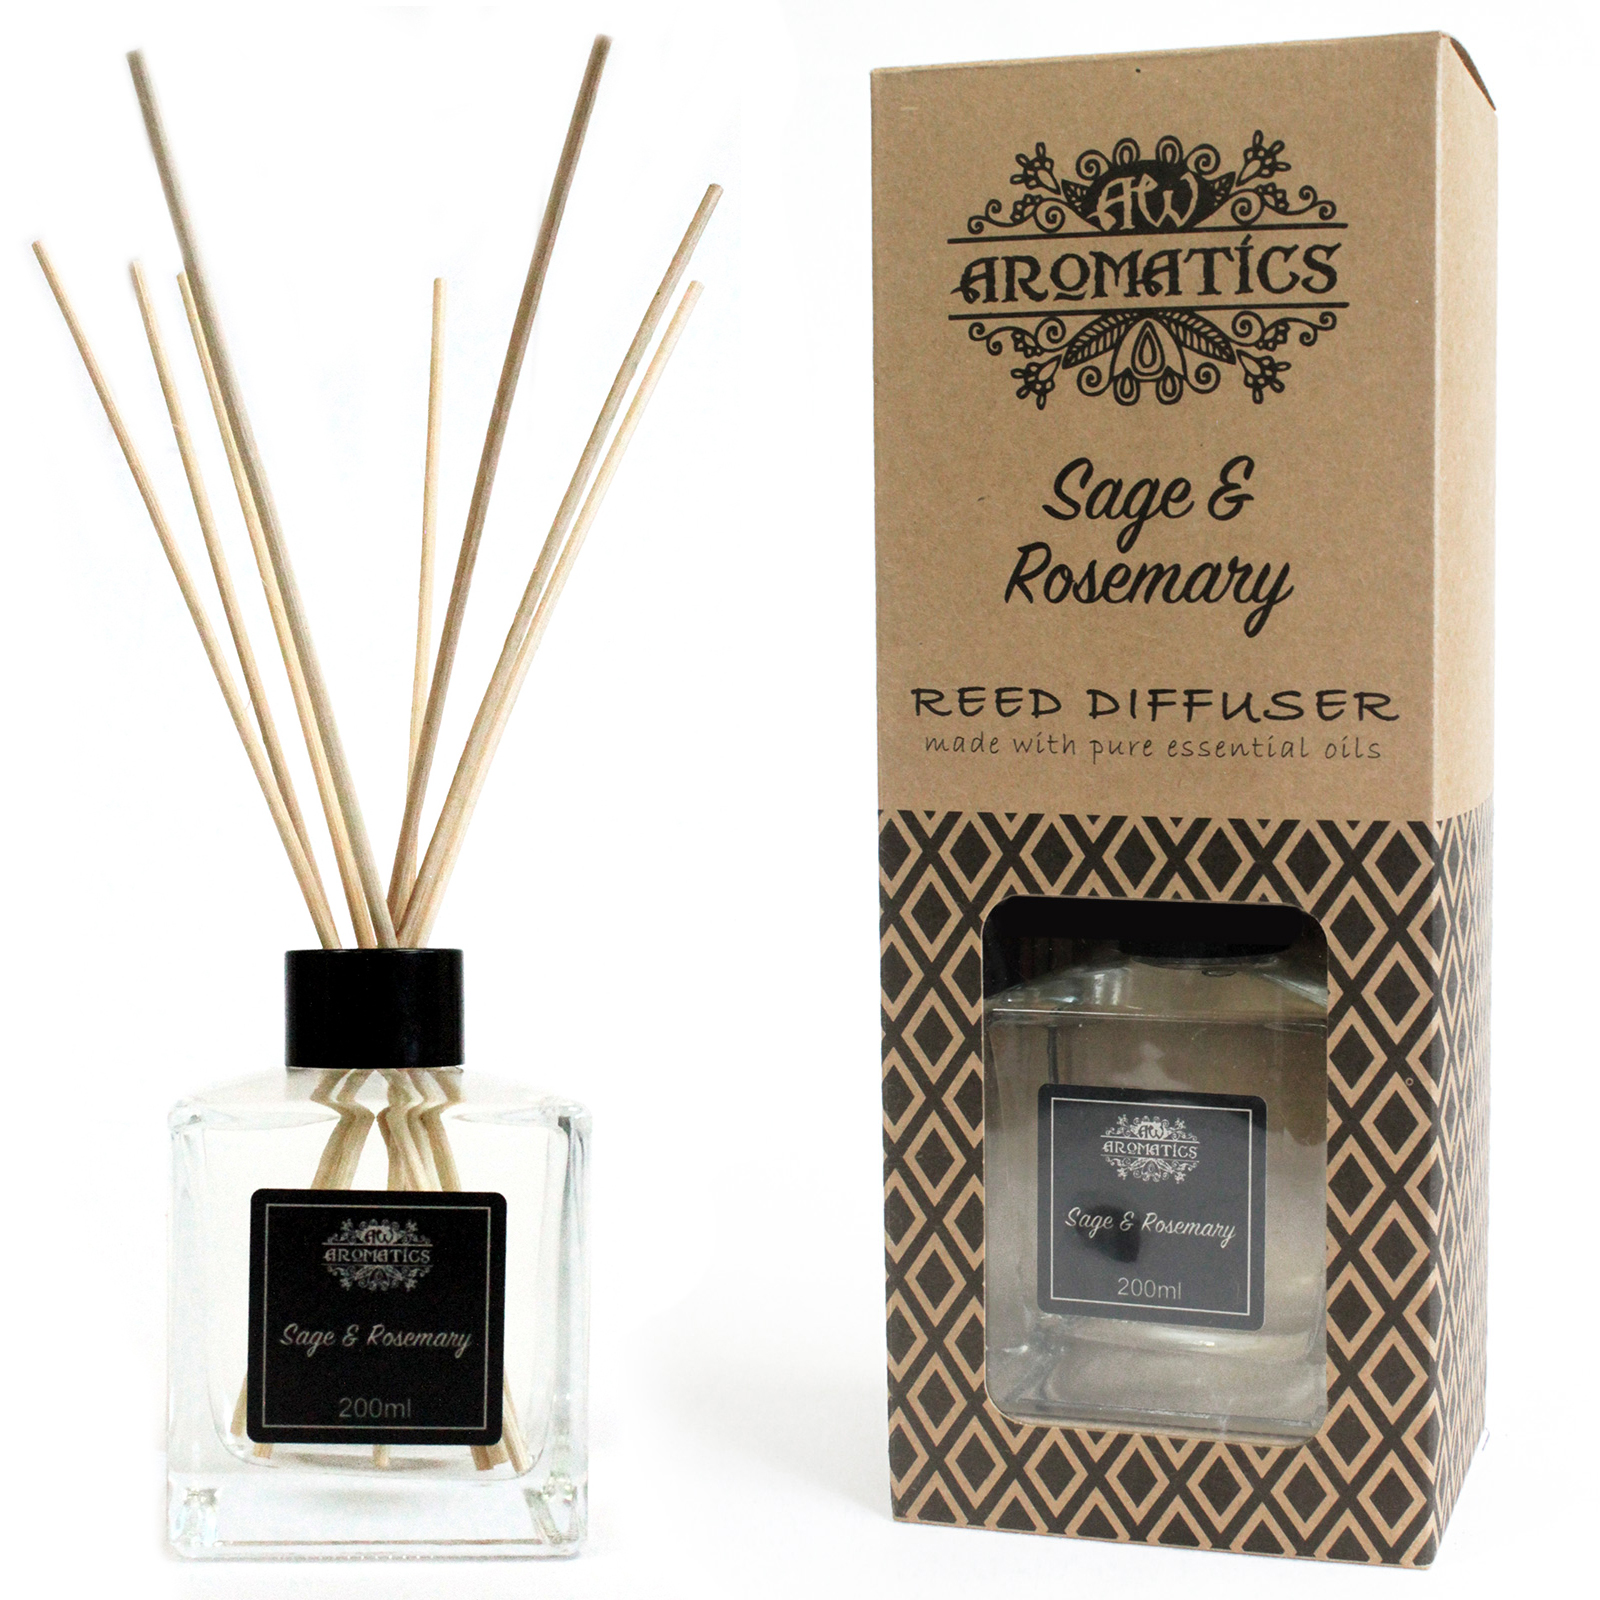 200ml Sage & Rosemary Essential Oil Reed Diffuser